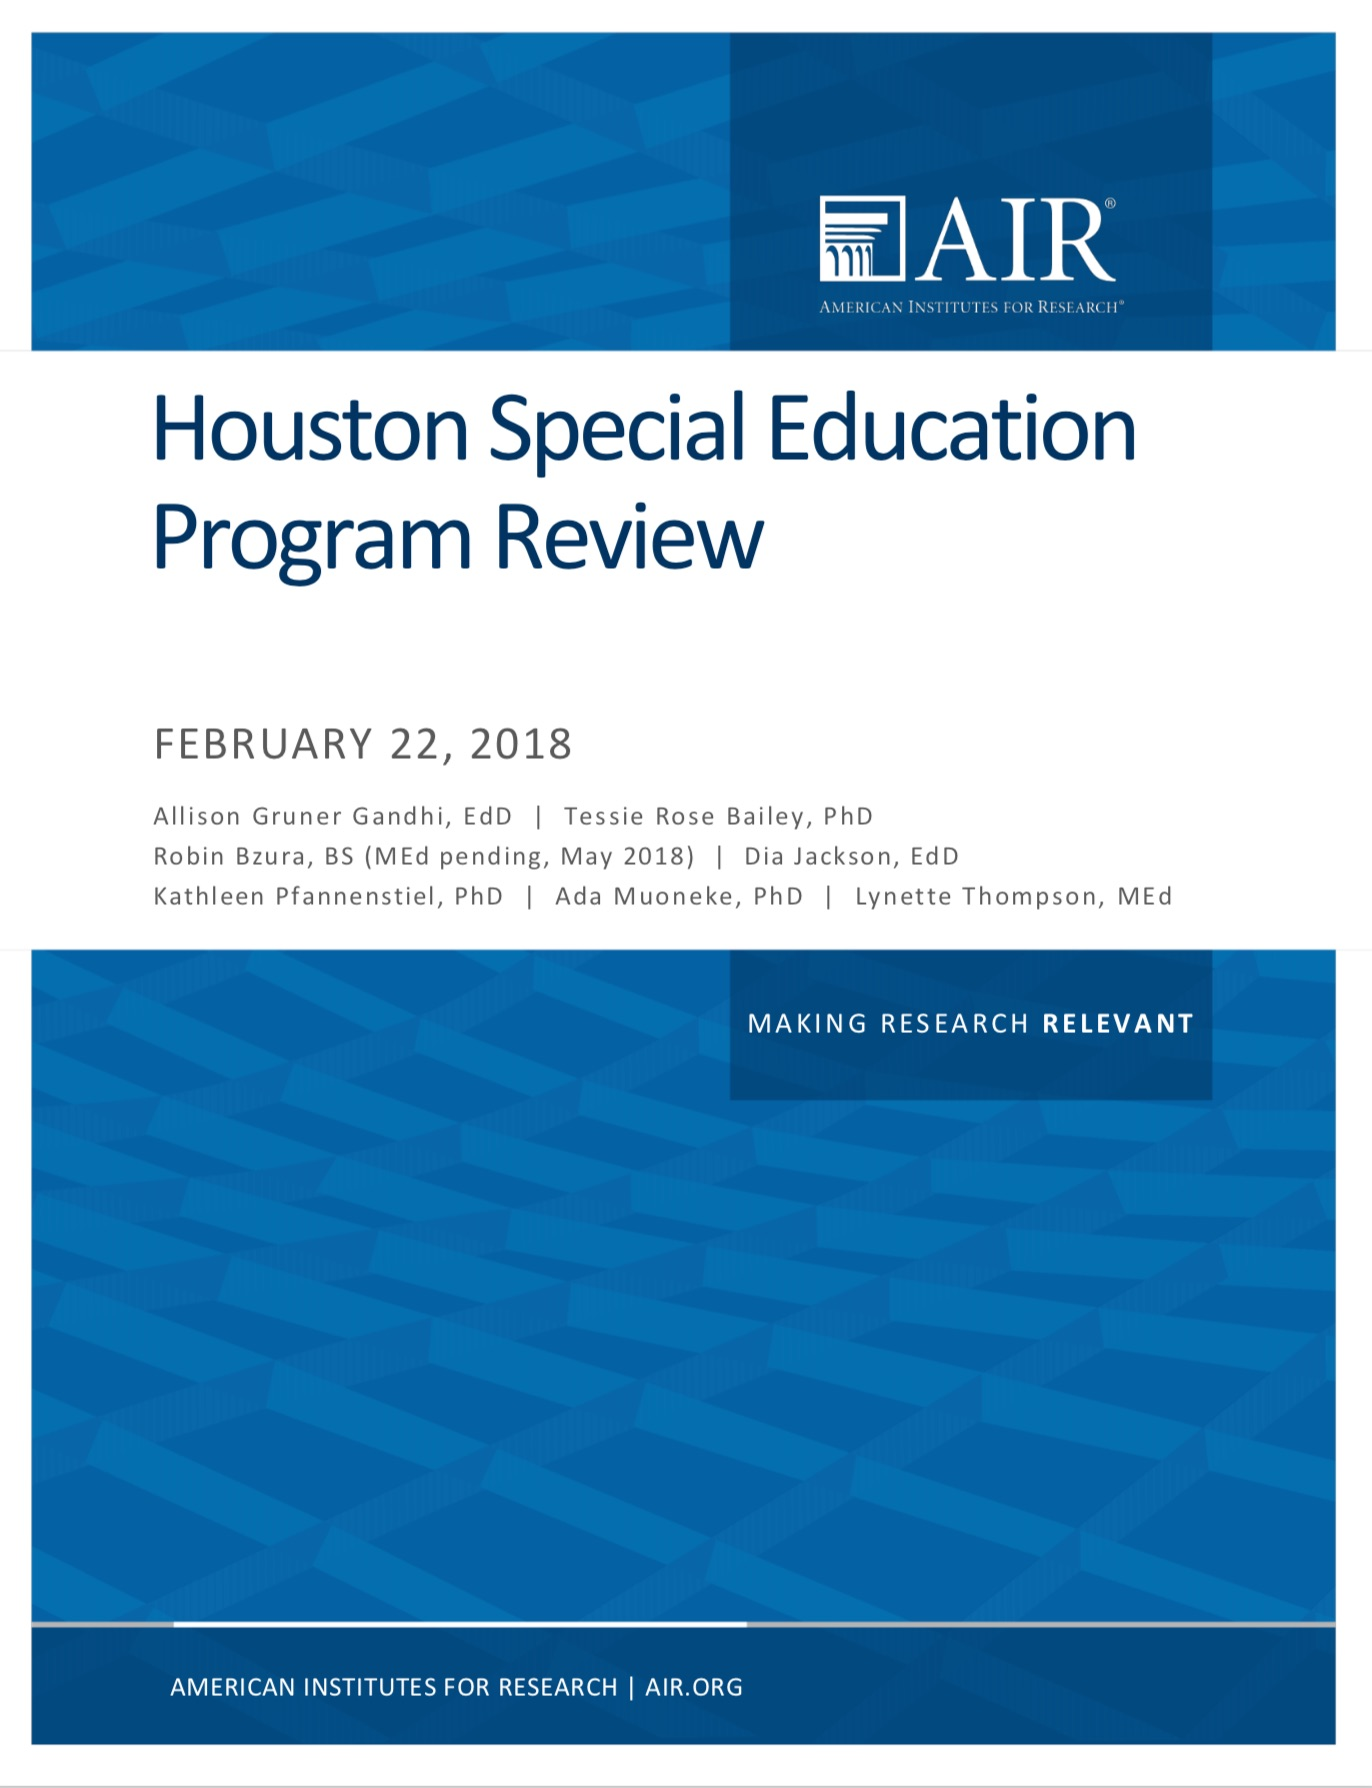 AIR_HISD_SPED_Review_02-22-18_FINAL_pdf__page_1_of_133_.jpg